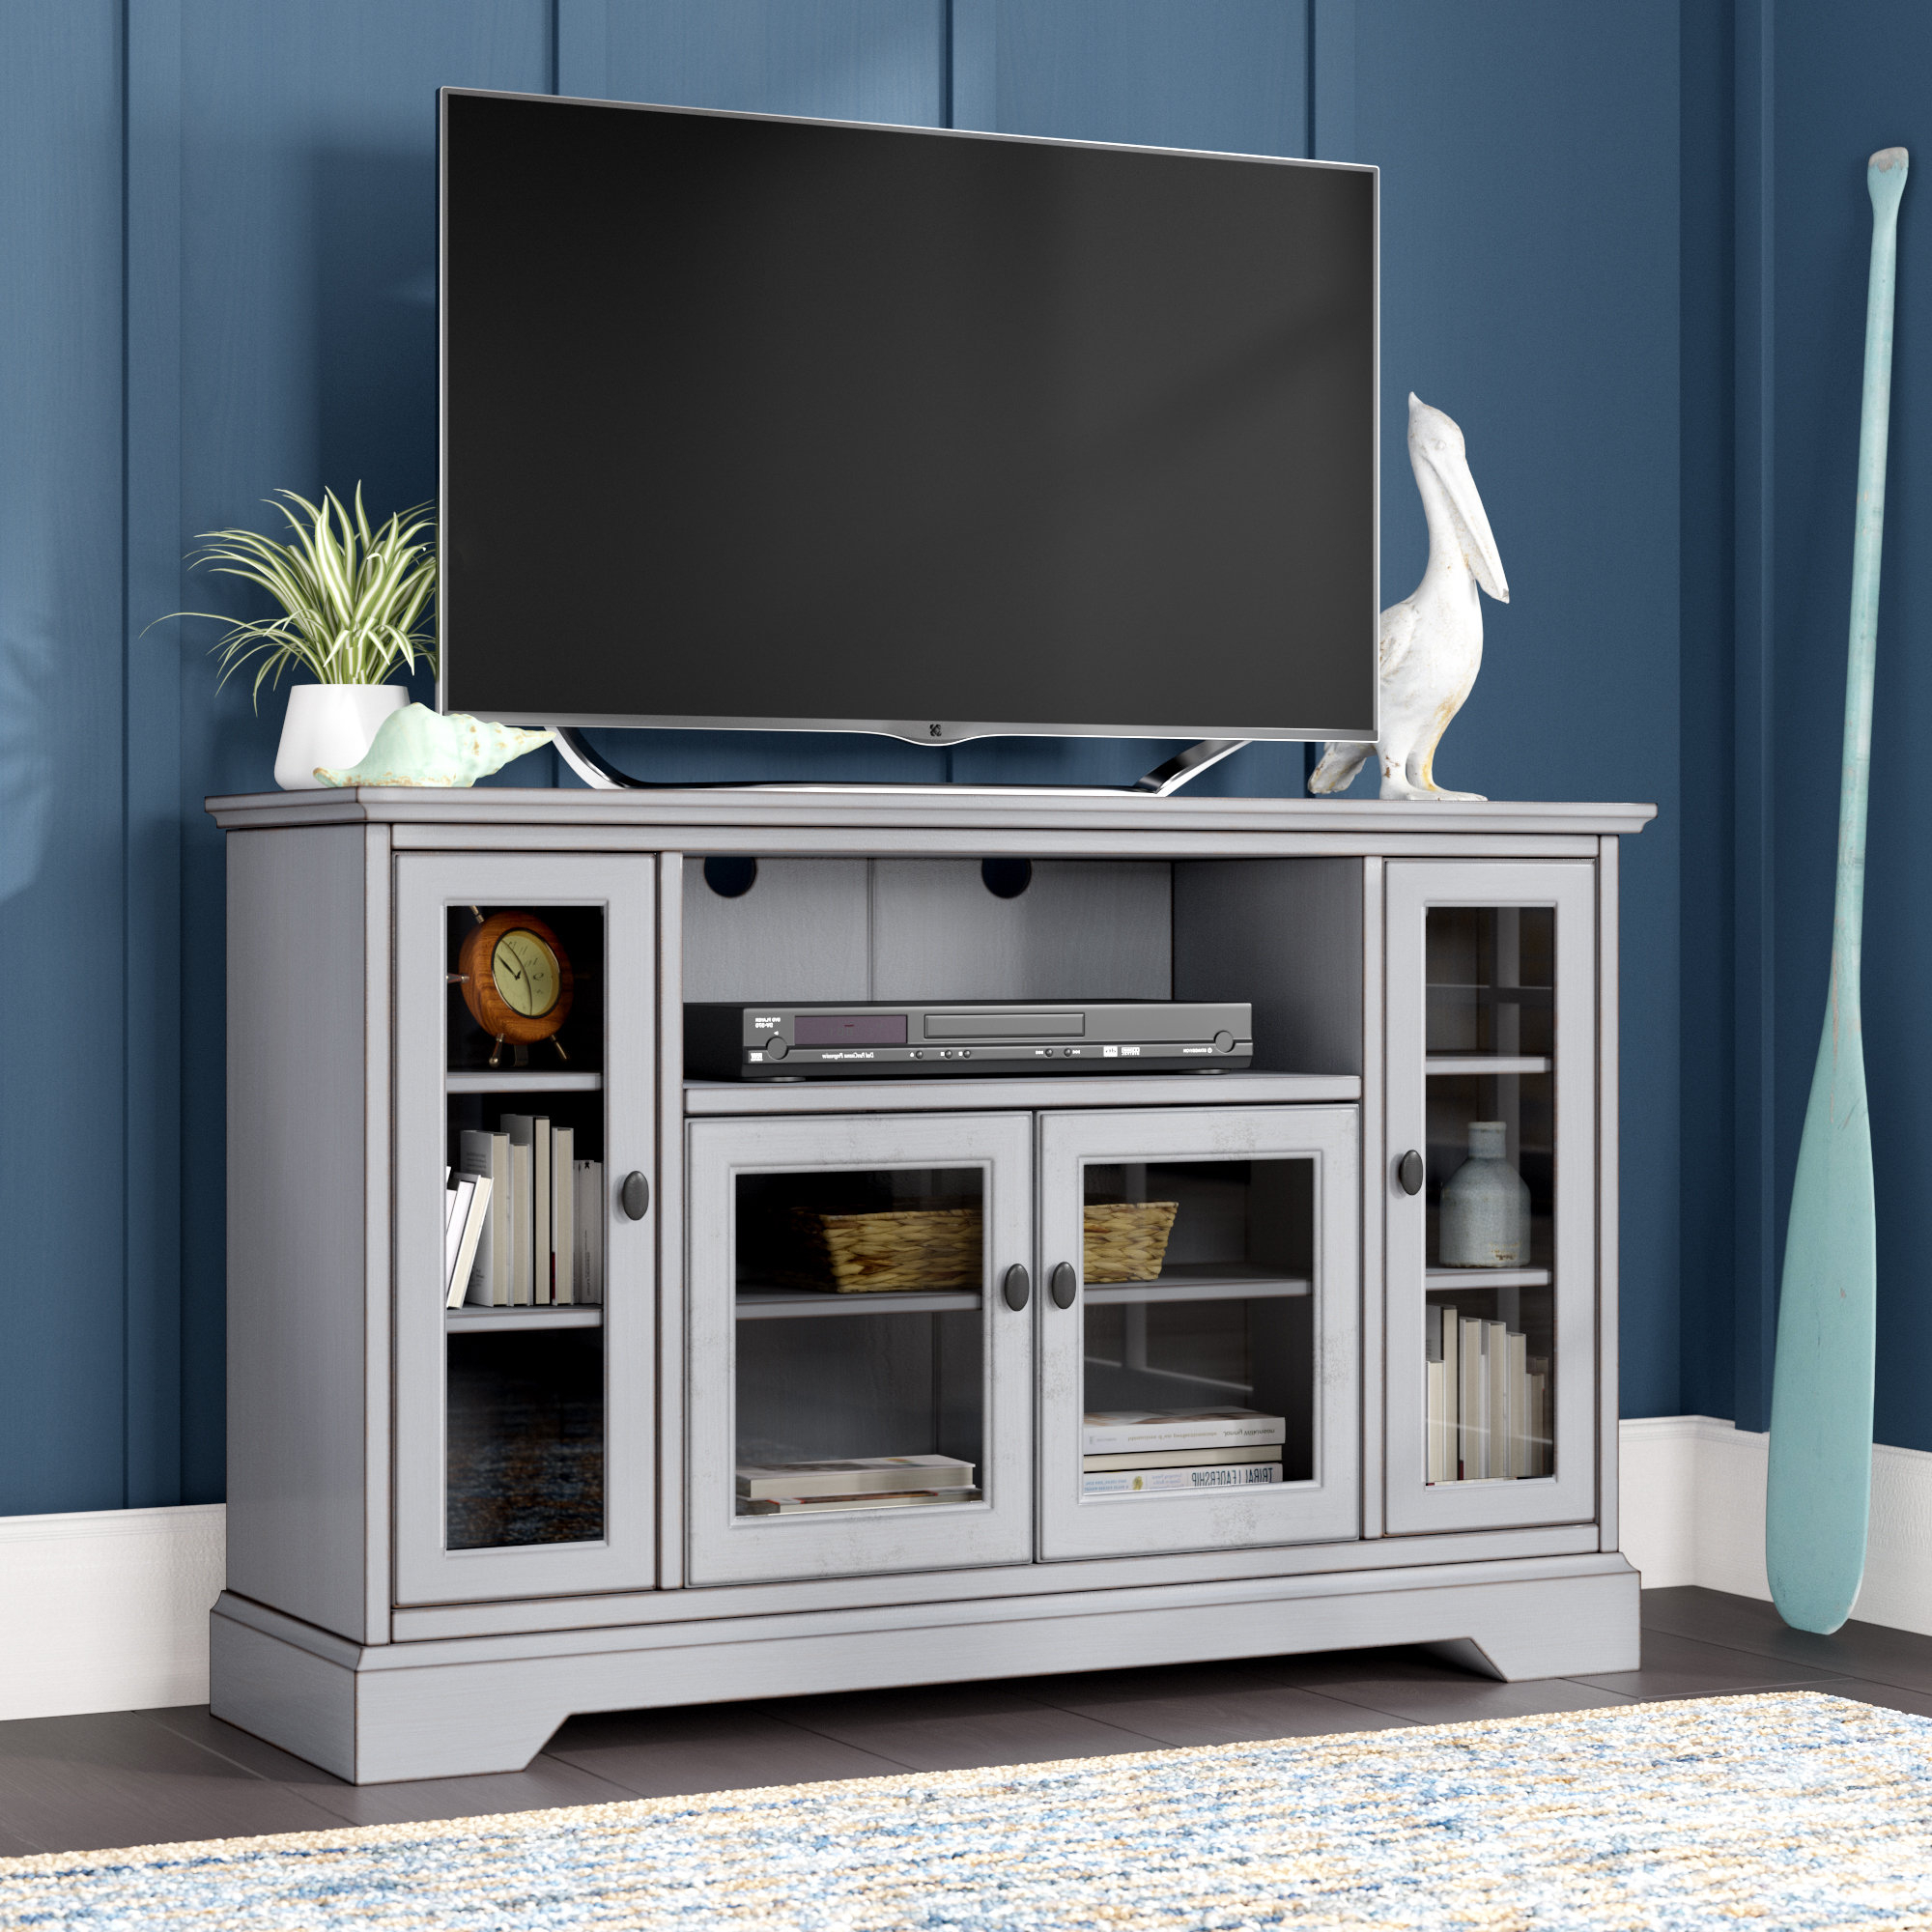 "Beachcrest Home Josie Tv Stand For Tvs Up To 55"" & Reviews 